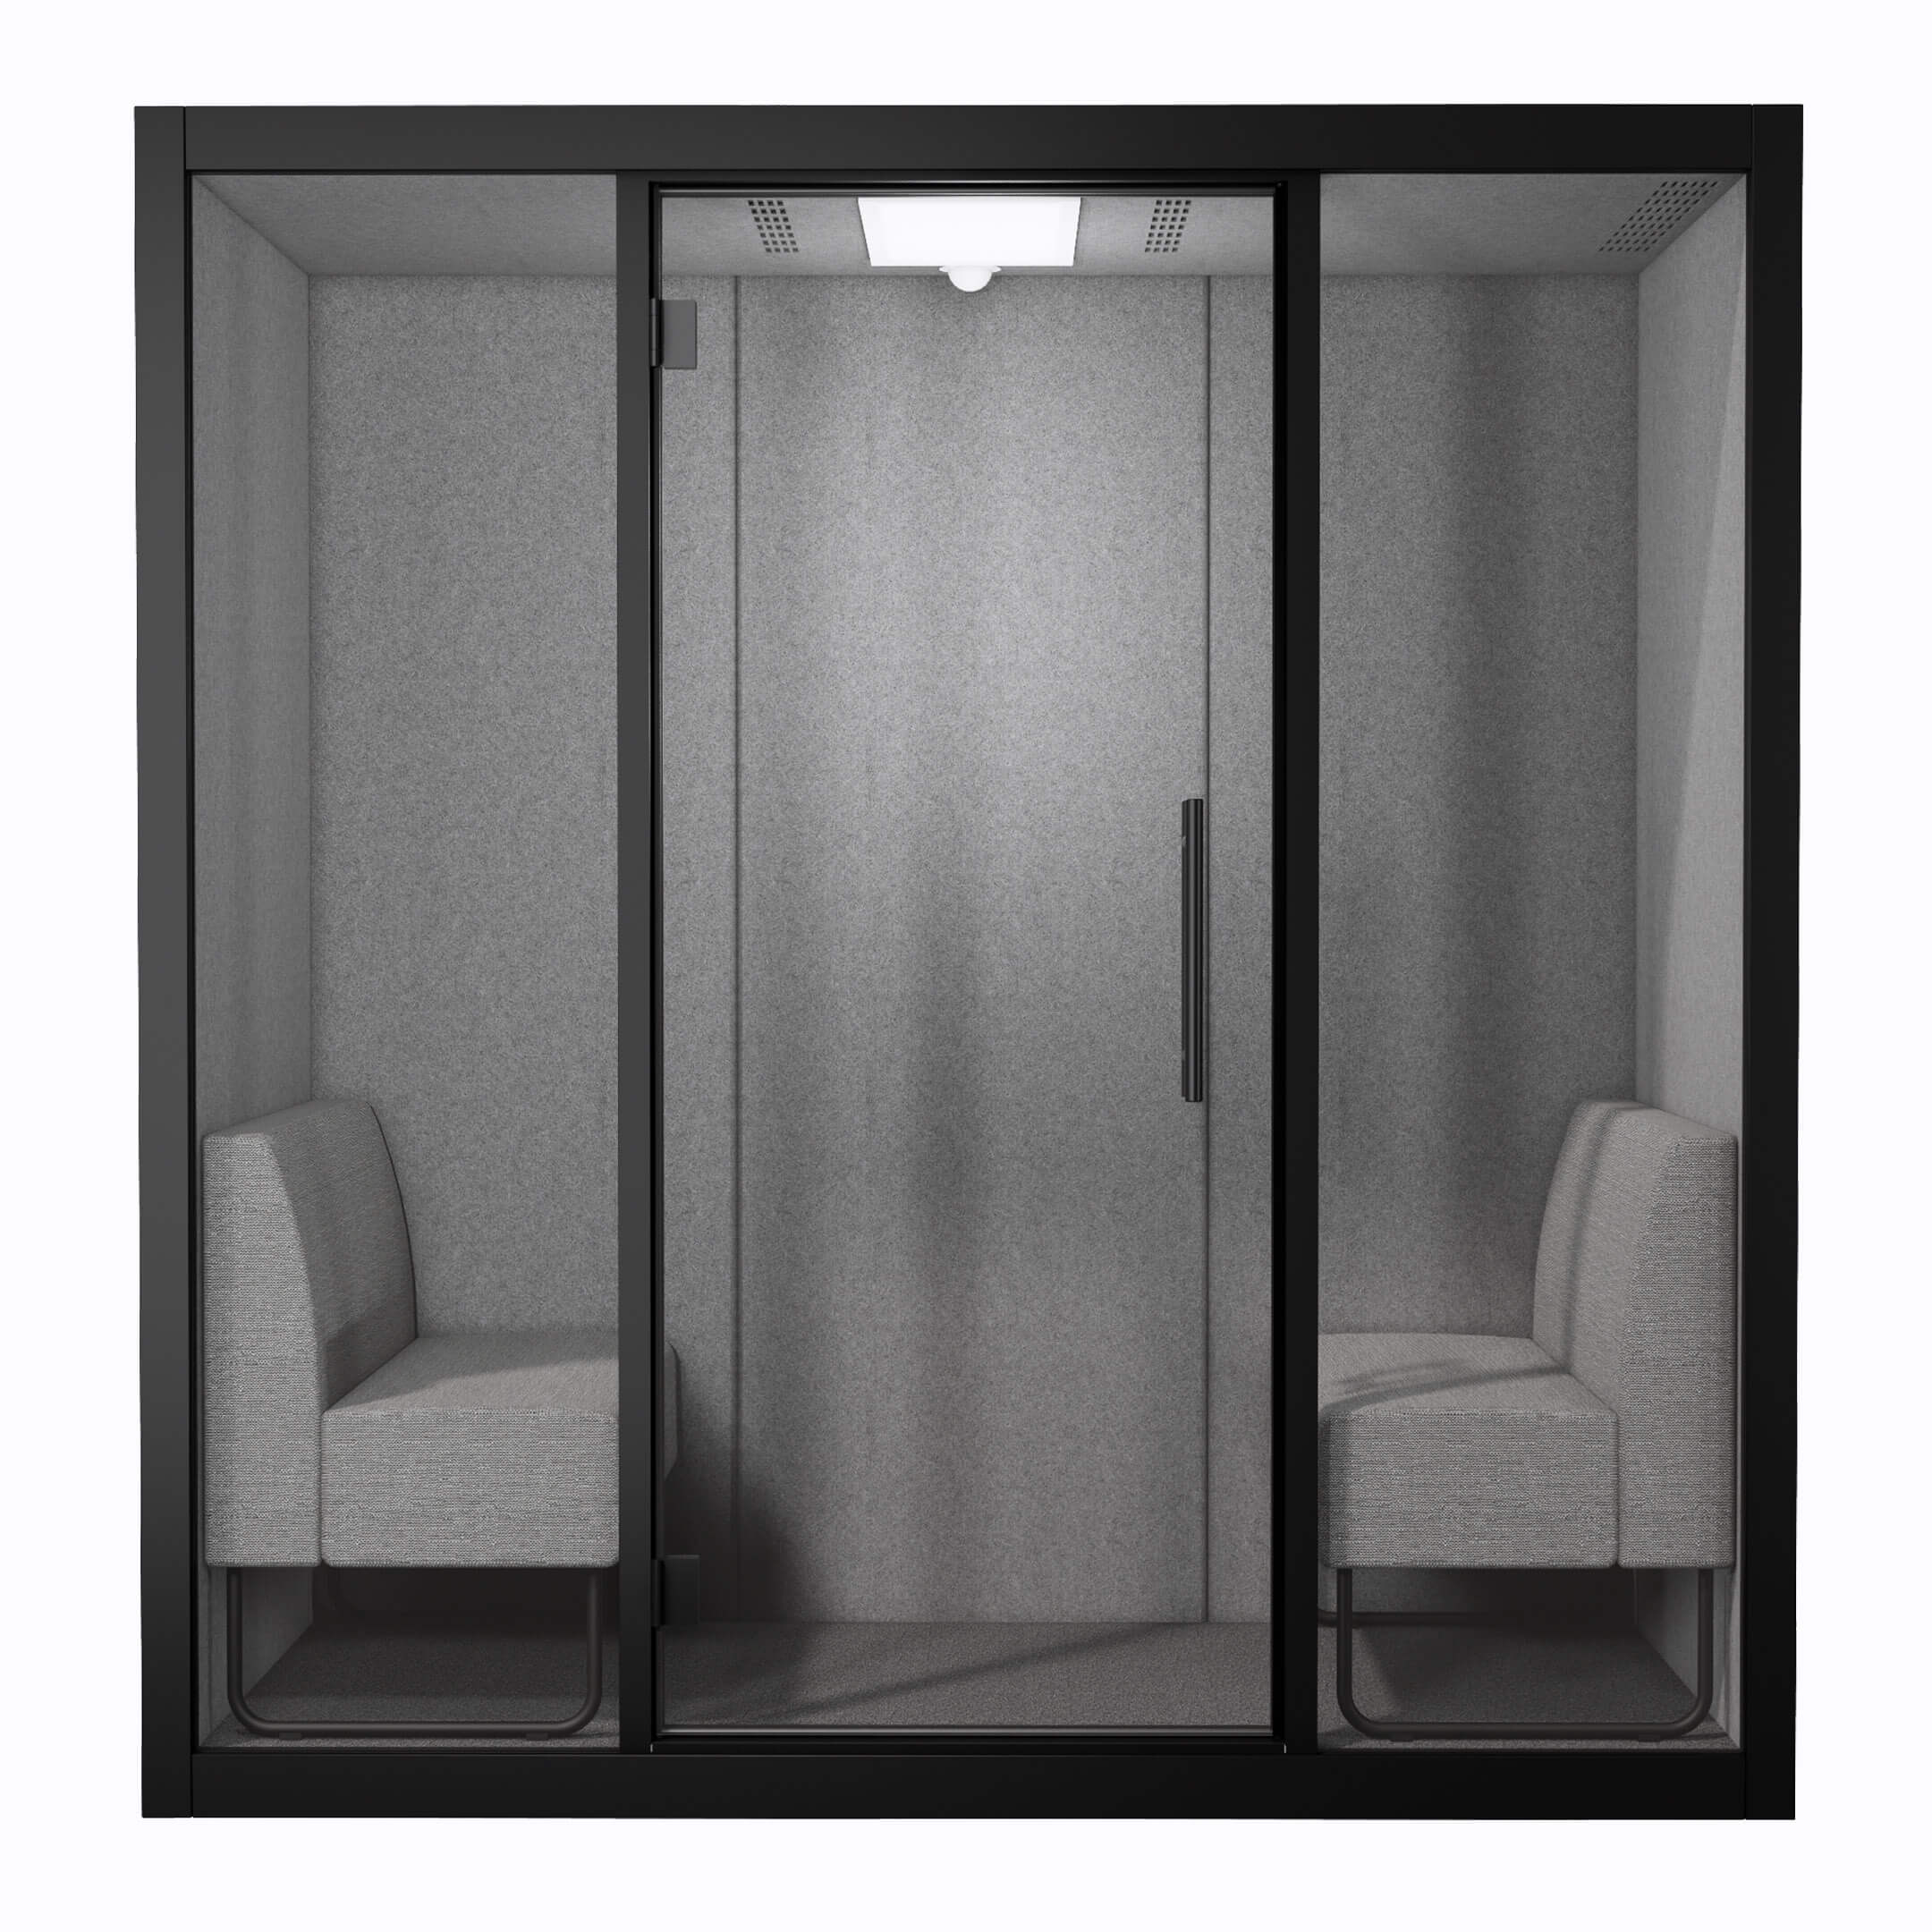 CHATBOX DUO-LOWBACK MEETING ROOM